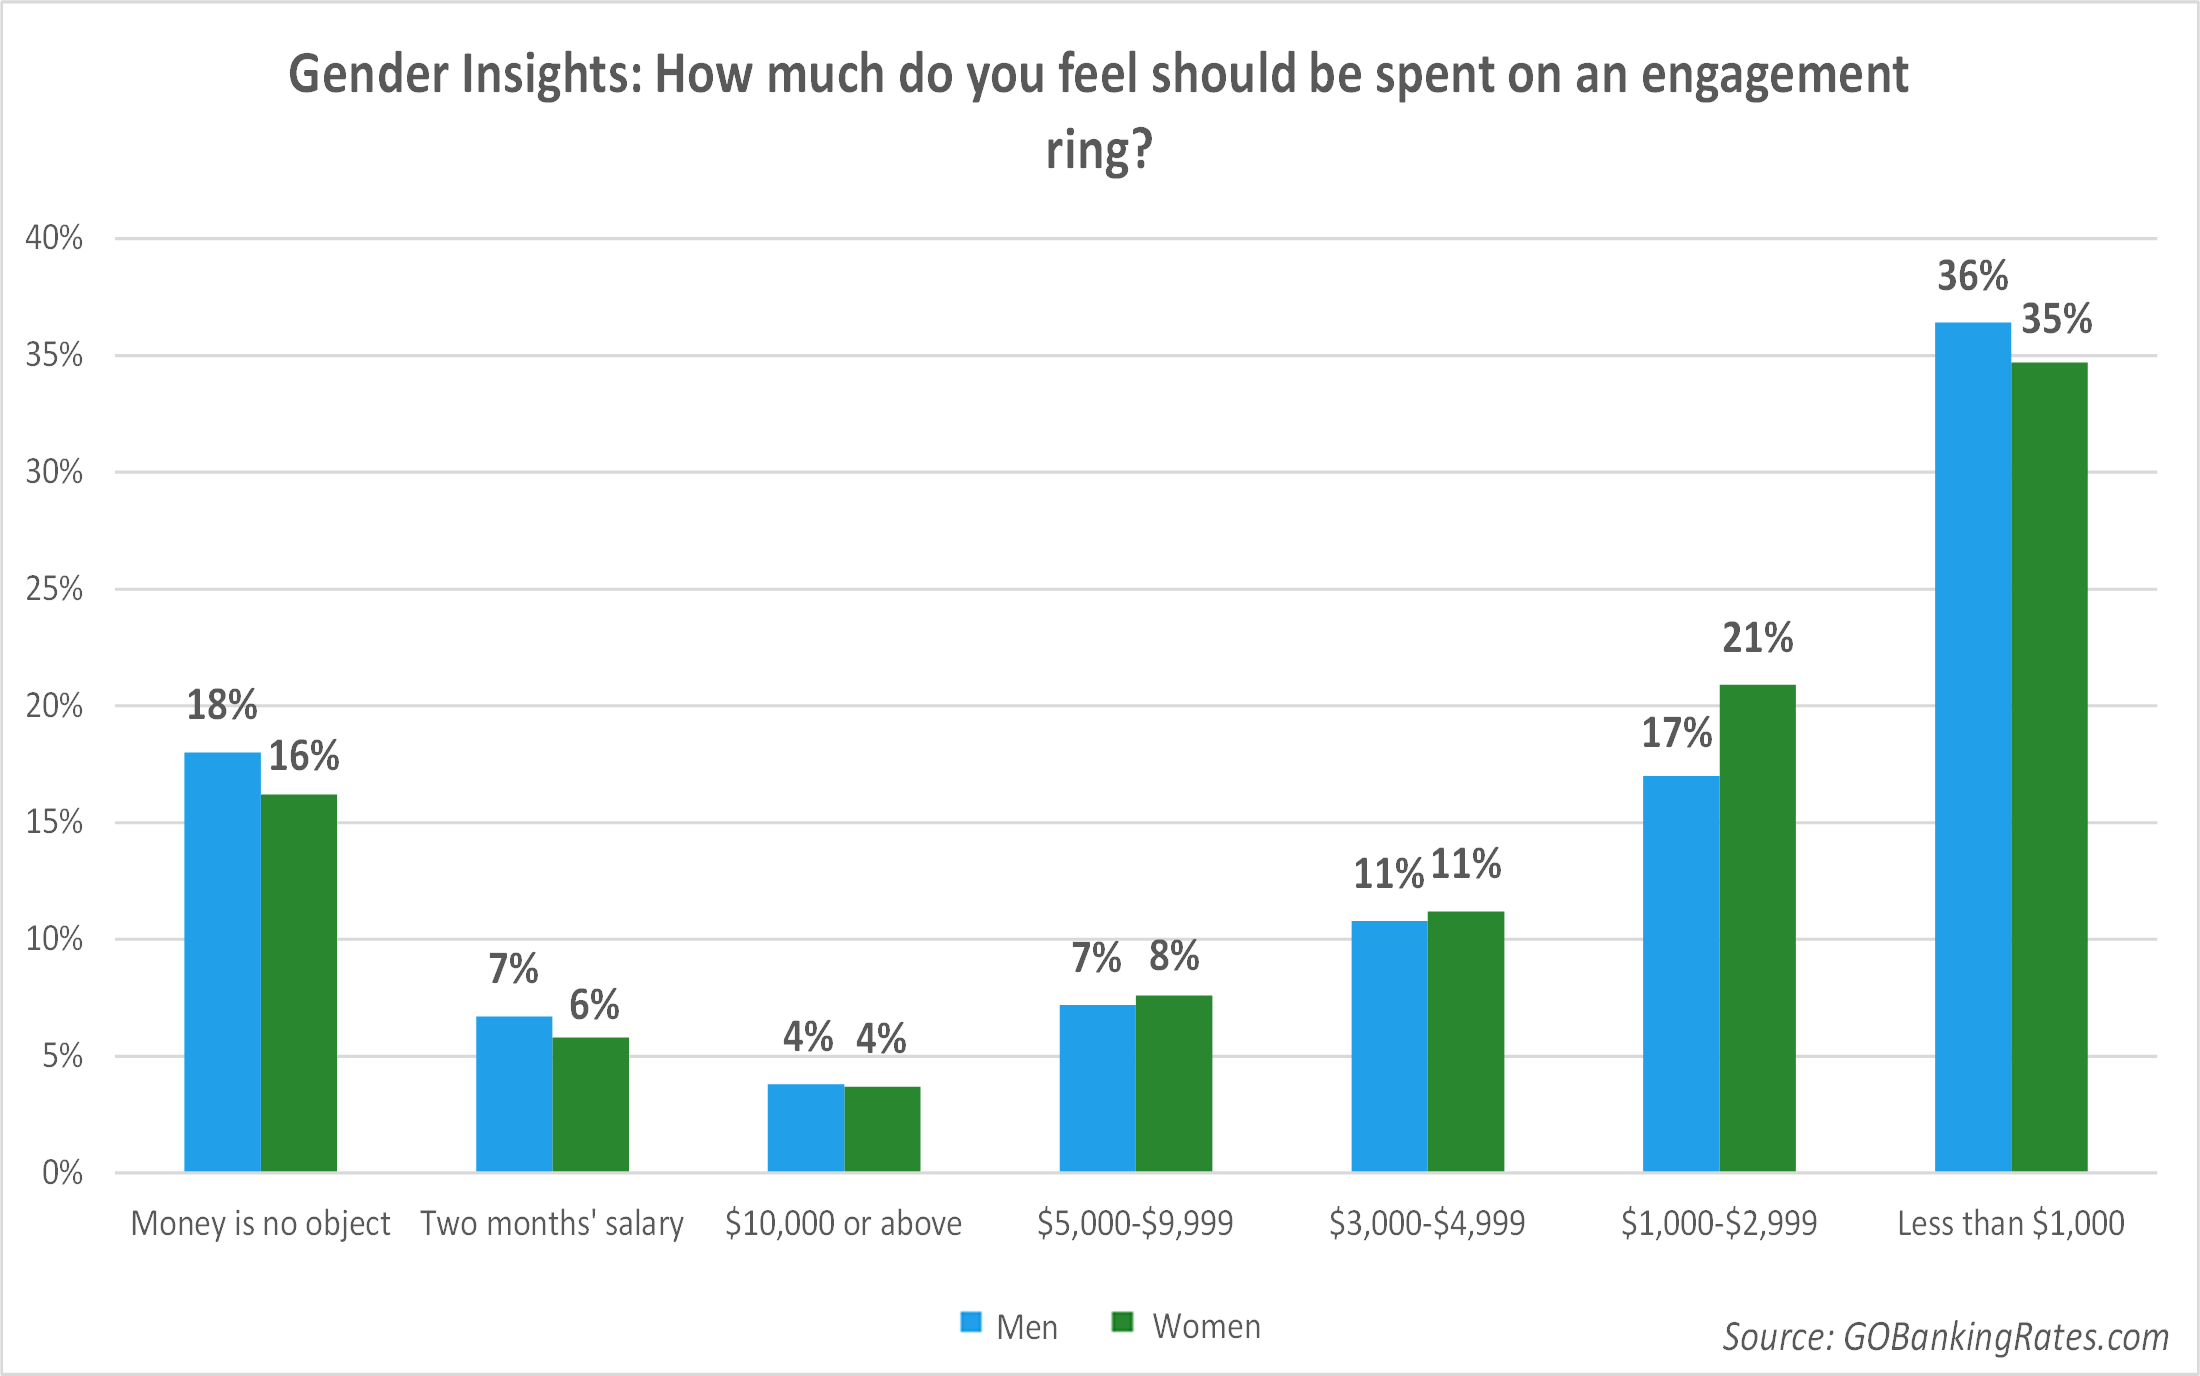 1 in 3 Americans Think You Should Spend Less Than $1 000 on an Engagement Rin